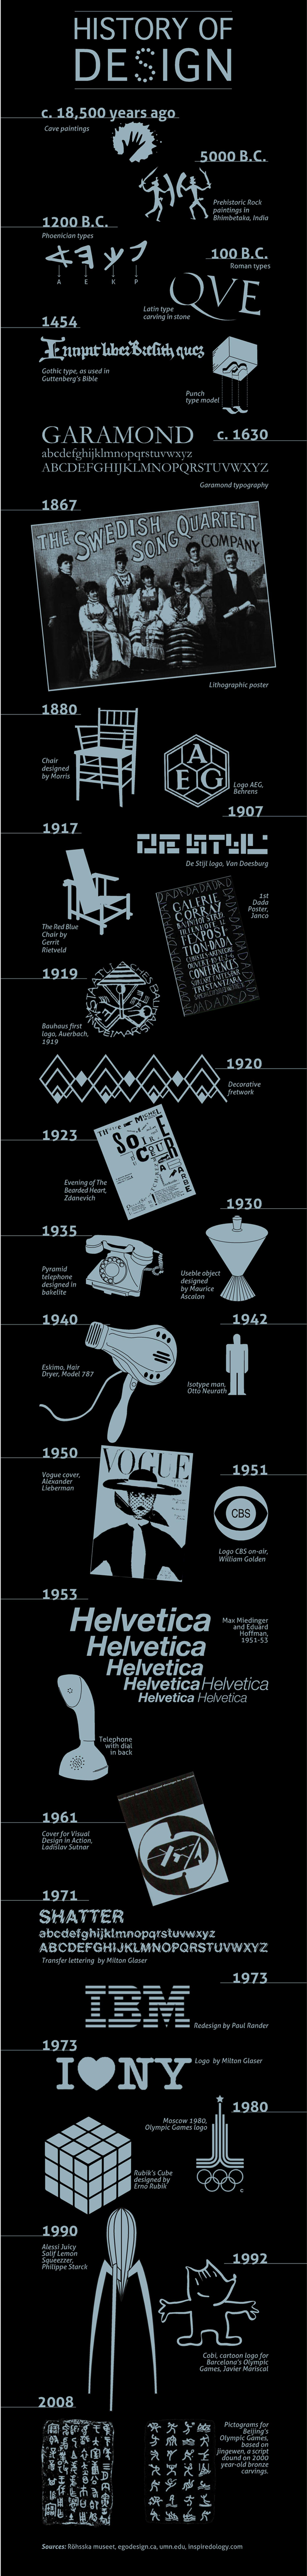 Fonte: http://www.businessinsider.com/the-history-of-design-2011-3